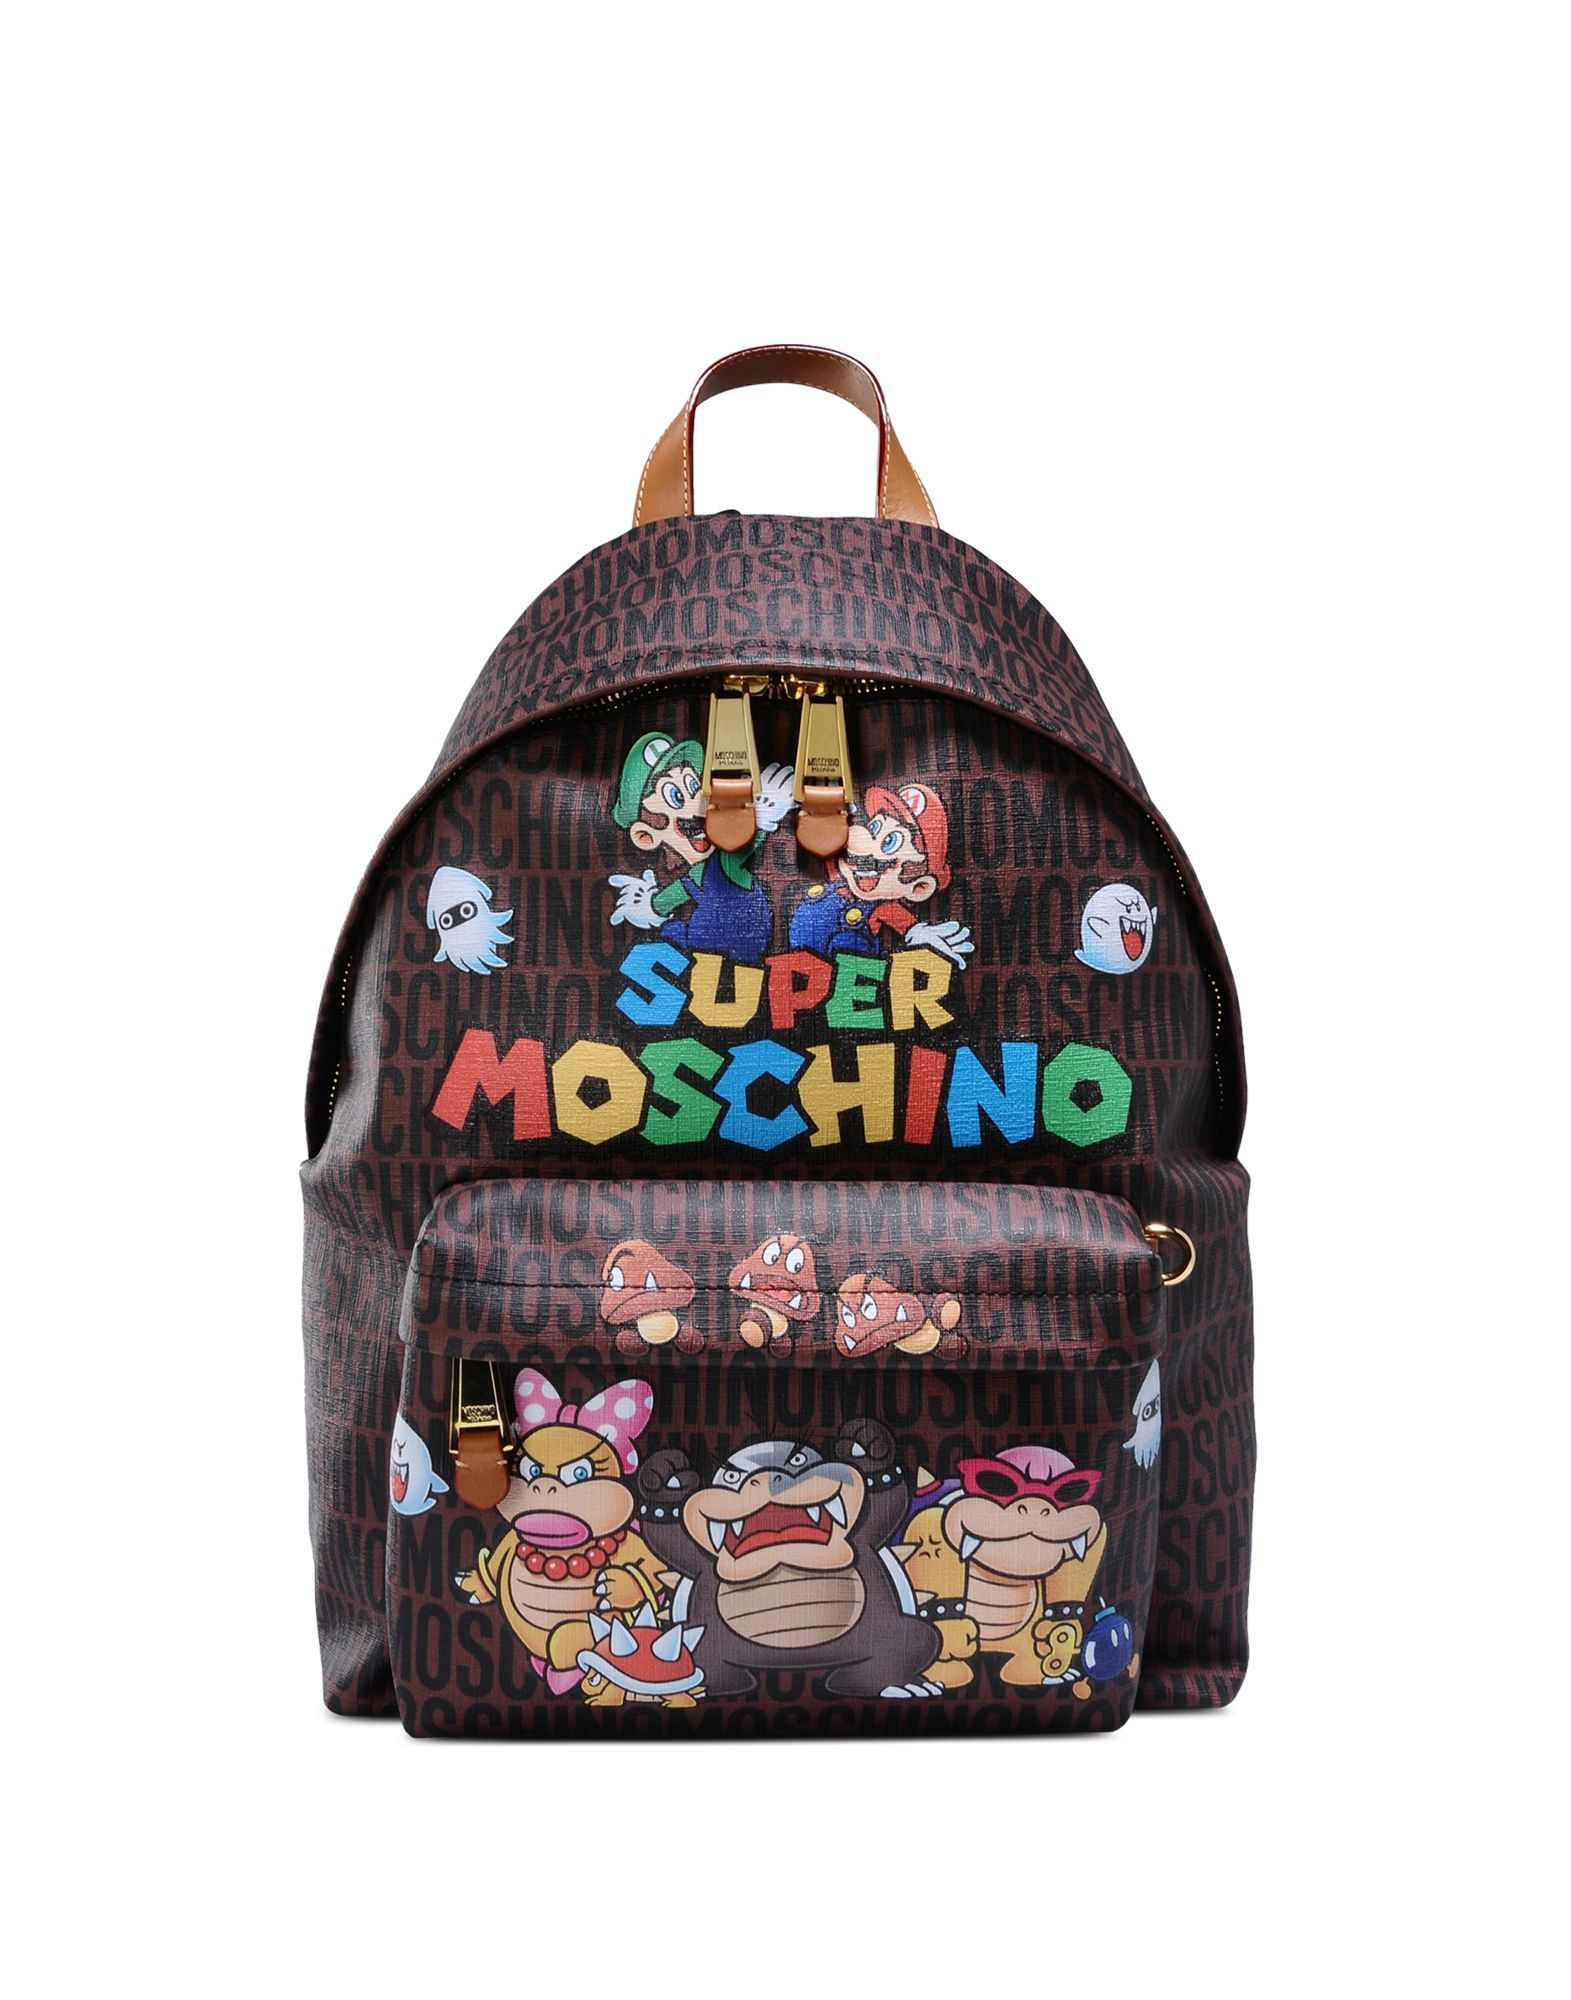 Super Mario Backpack - Moschino Online Store  3eb7ad6f18ee0